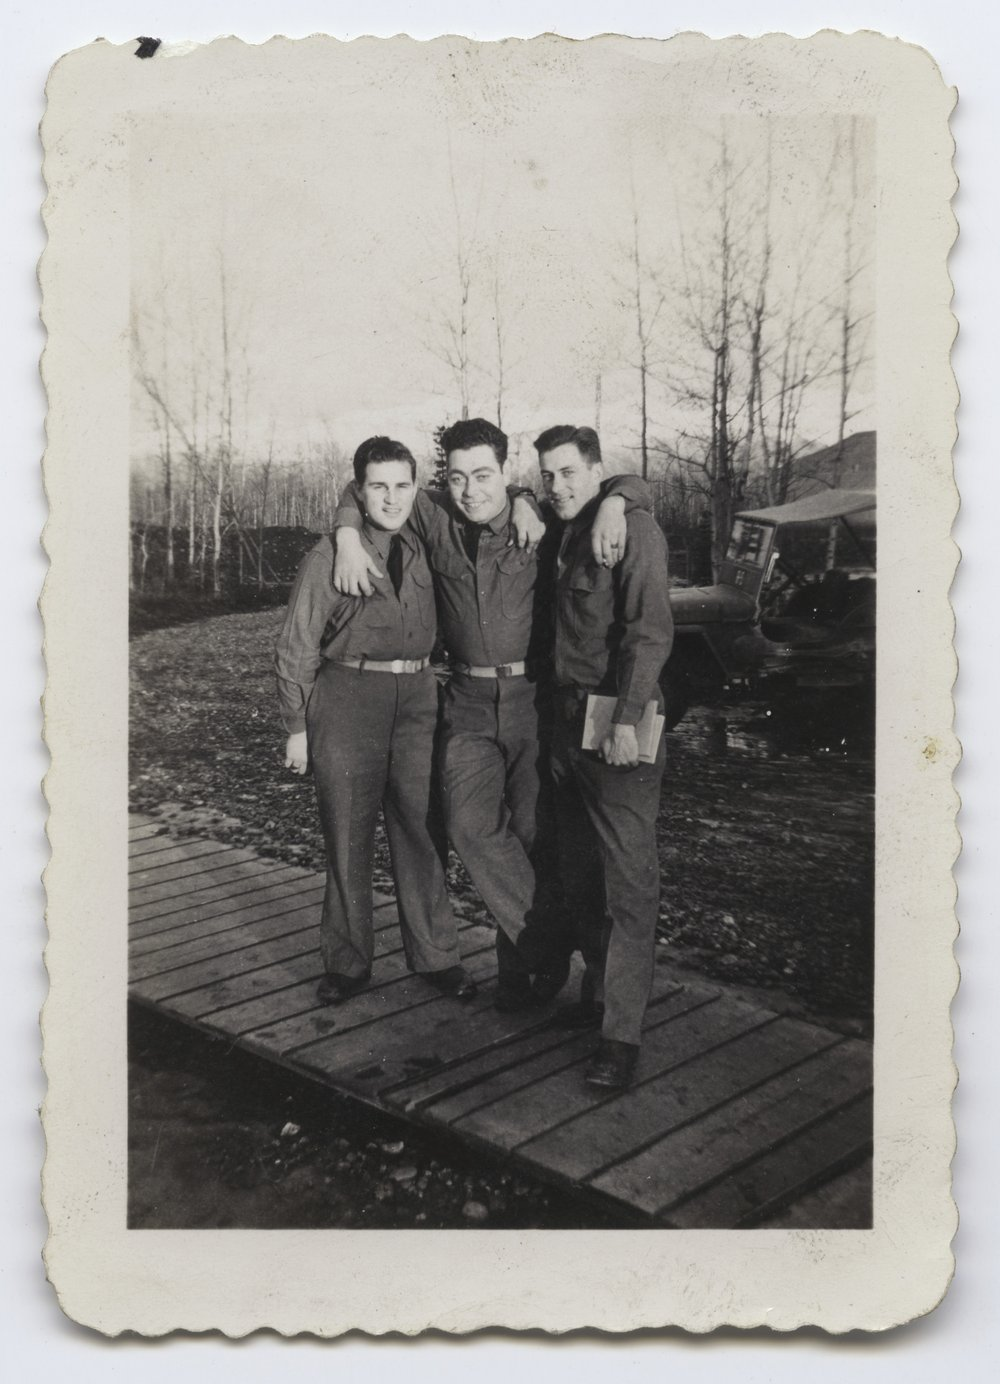 U. S. Army soldiers in Europe during World War II - 3